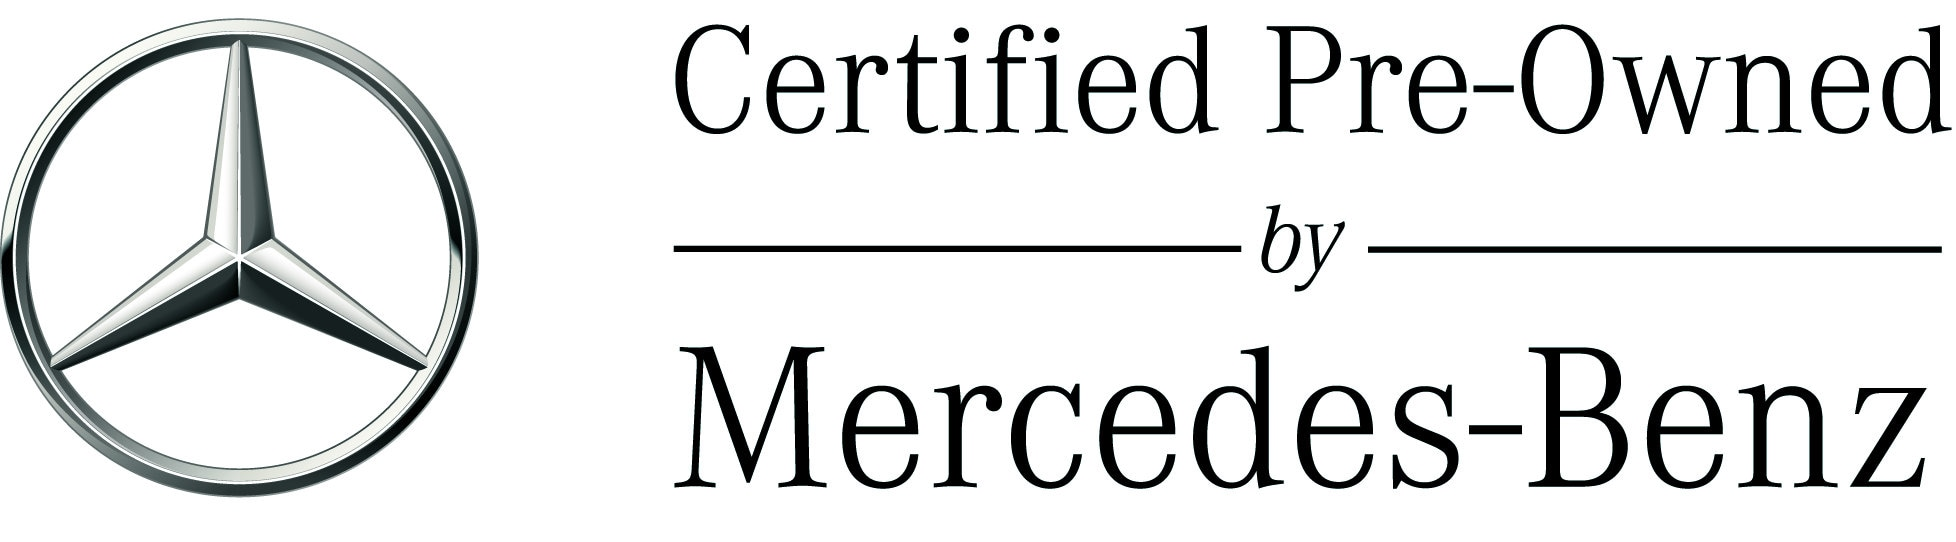 Mercedes benz at herb chambers what 39 s a certified pre for Mercedes benz certified pre owned warranty